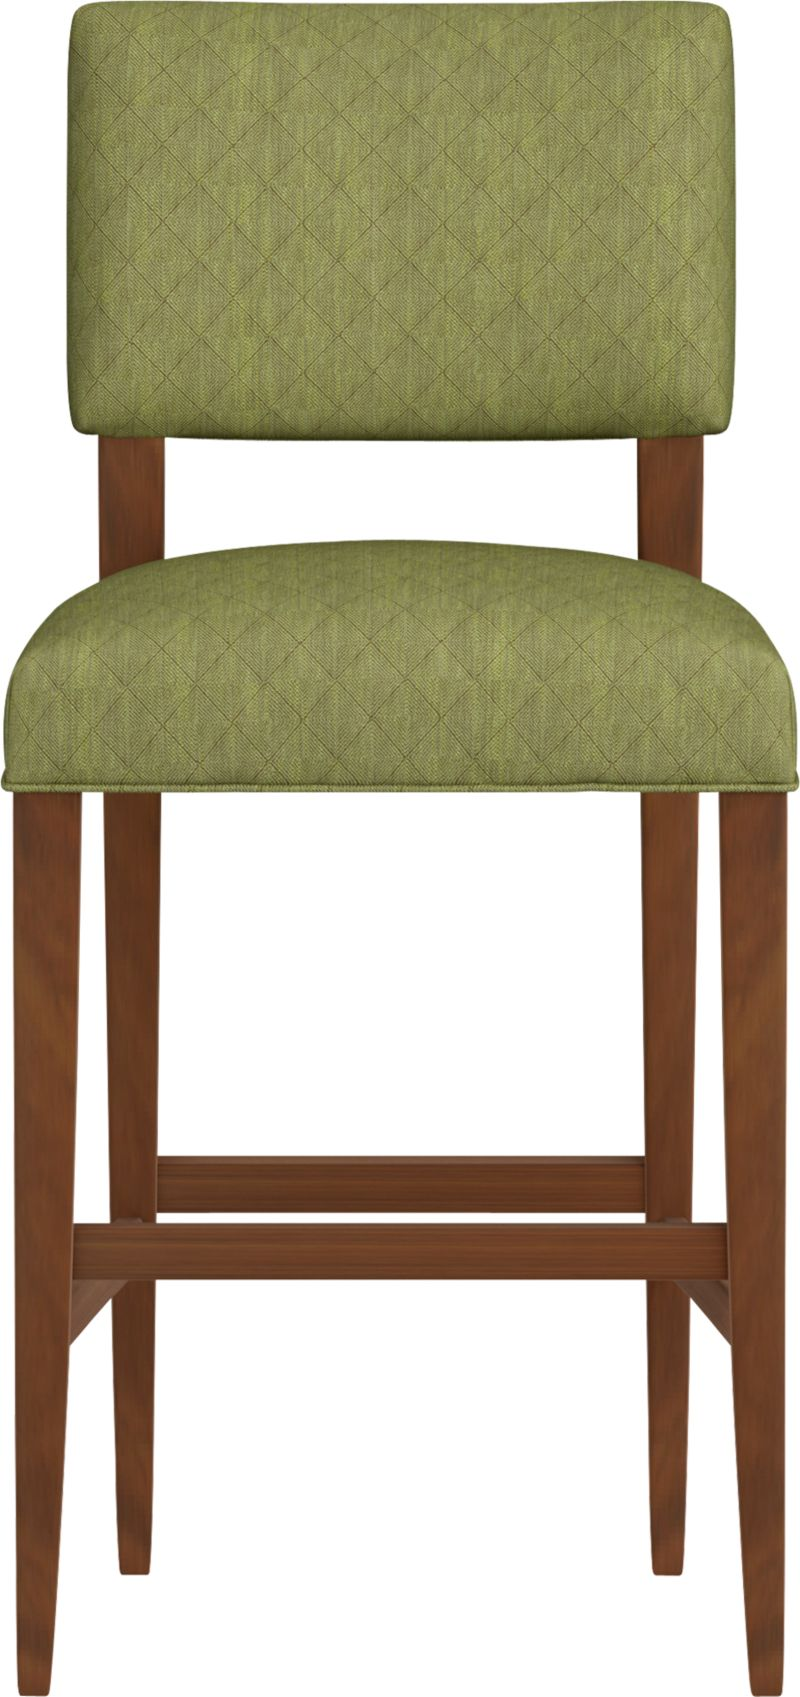 "Cody receives your guests with all the generous proportions and comfort of a fully upholstered barstool, but keeps the room light and airy with its open back design and minimal lines. The look is soft and modern: a tight-cushioned but very padded seat and contoured back made for lingering, and elegant tapering solid hardwood legs.<br /><br />After you place your order, we will send a fabric swatch via next day air for your final approval. We will contact you to verify both your receipt and approval of the fabric swatch before finalizing your order.<br /><br /><NEWTAG/><ul><li>Eco-friendly construction</li><li>Certified sustainable, kiln-dried hardwood frame</li><li>Tight seat and back cushions with soy-based foam and web suspension</li><li>Rayon-polyester-cotton blend fabric with self welt detail</li><li>32""H seat sized for bars</li><li>Made in North Carolina, USA</li></ul>"